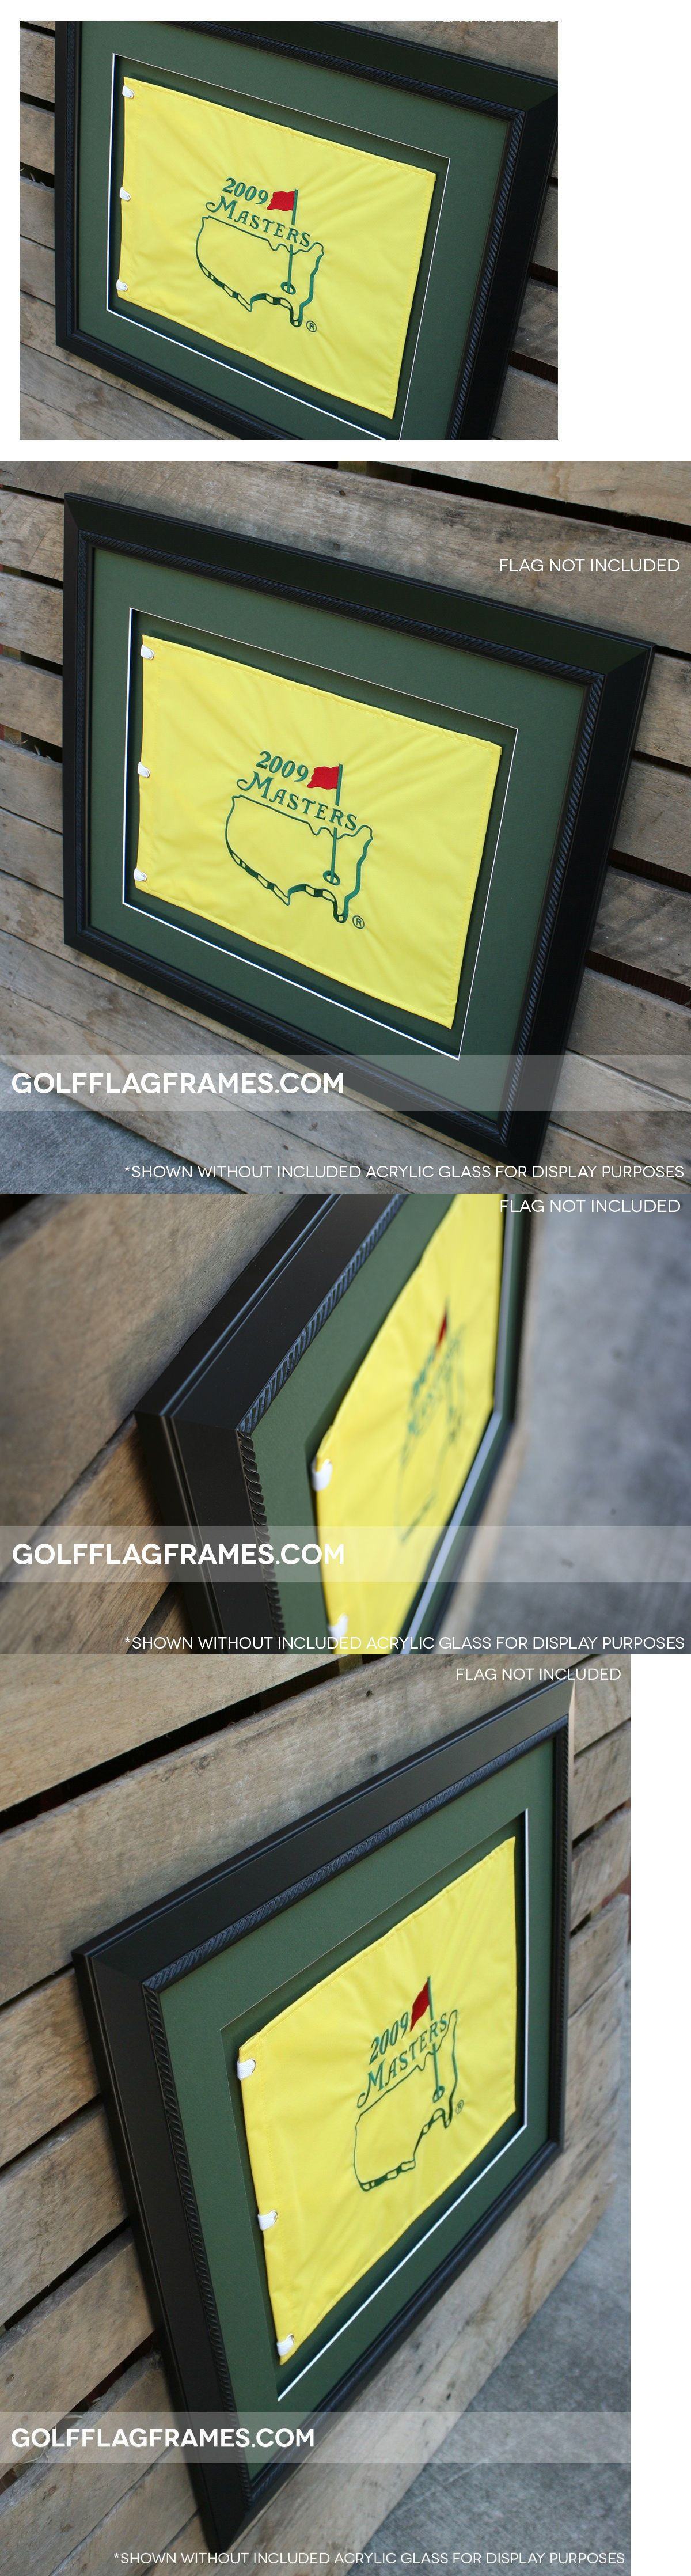 Exelent Golf Flag Frame Elaboration - Picture Frame Ideas ...